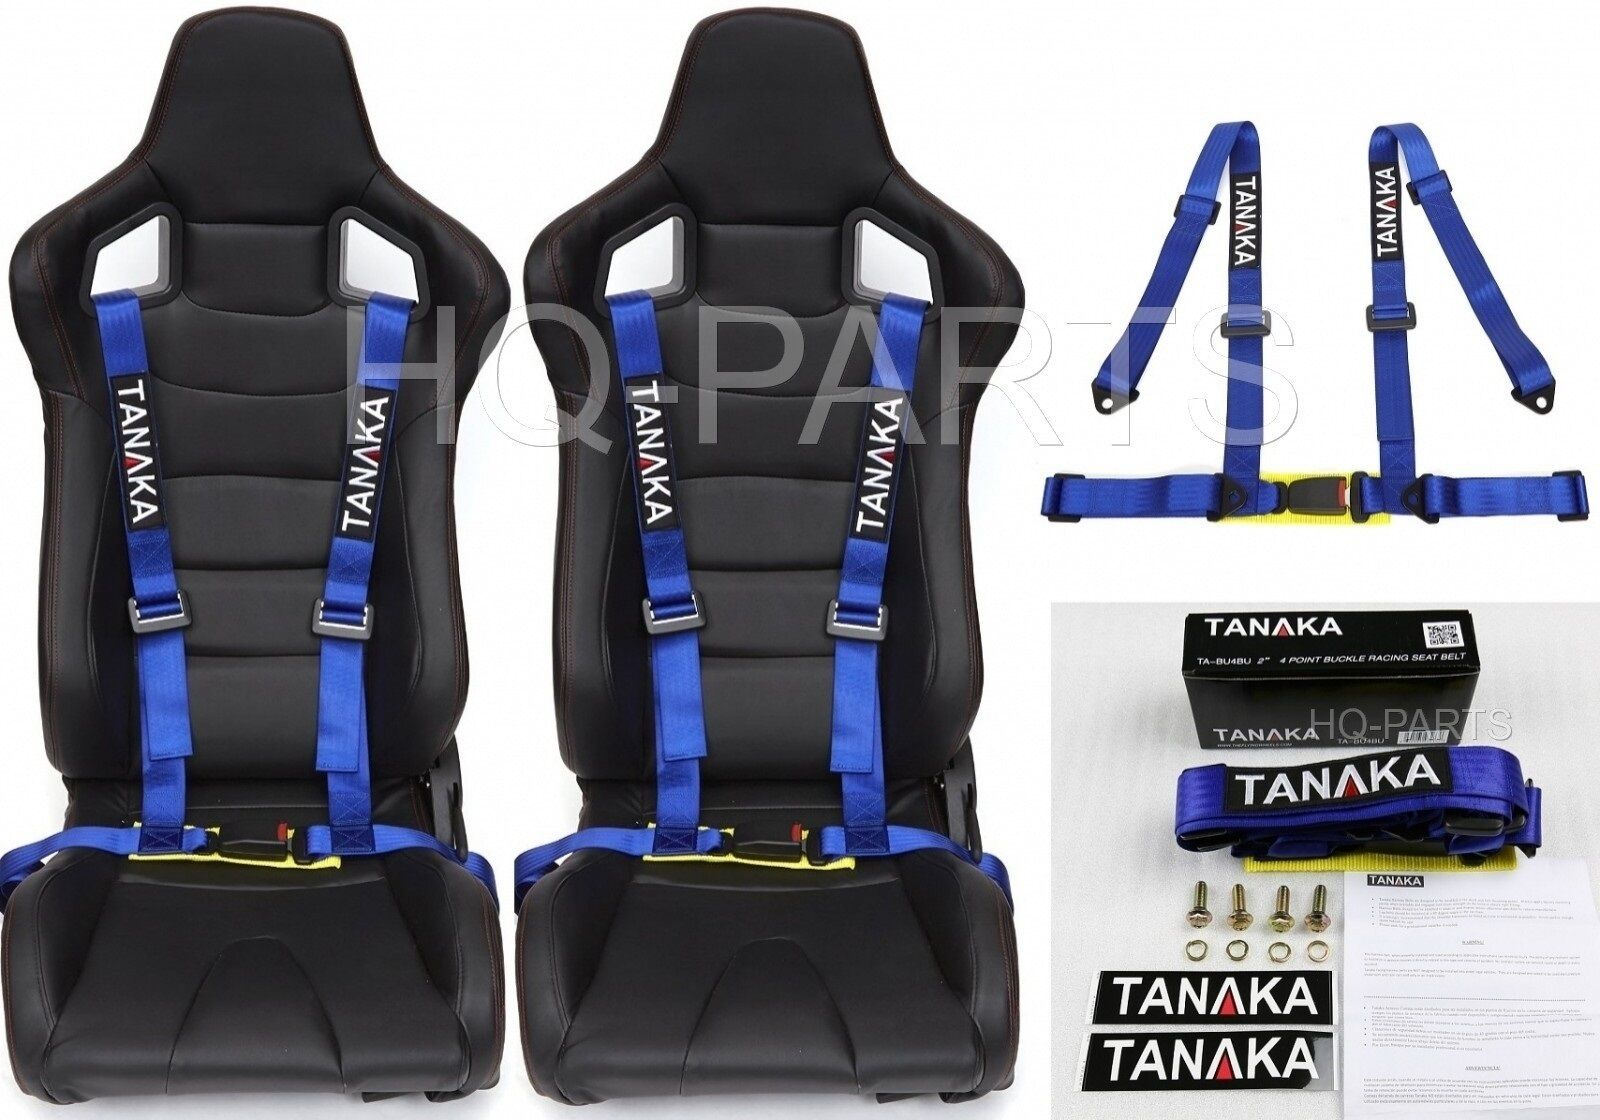 2 X TANAKA UNIVERSAL BLUE 4 POINT BUCKLE RACING SEAT BELT HARNESS